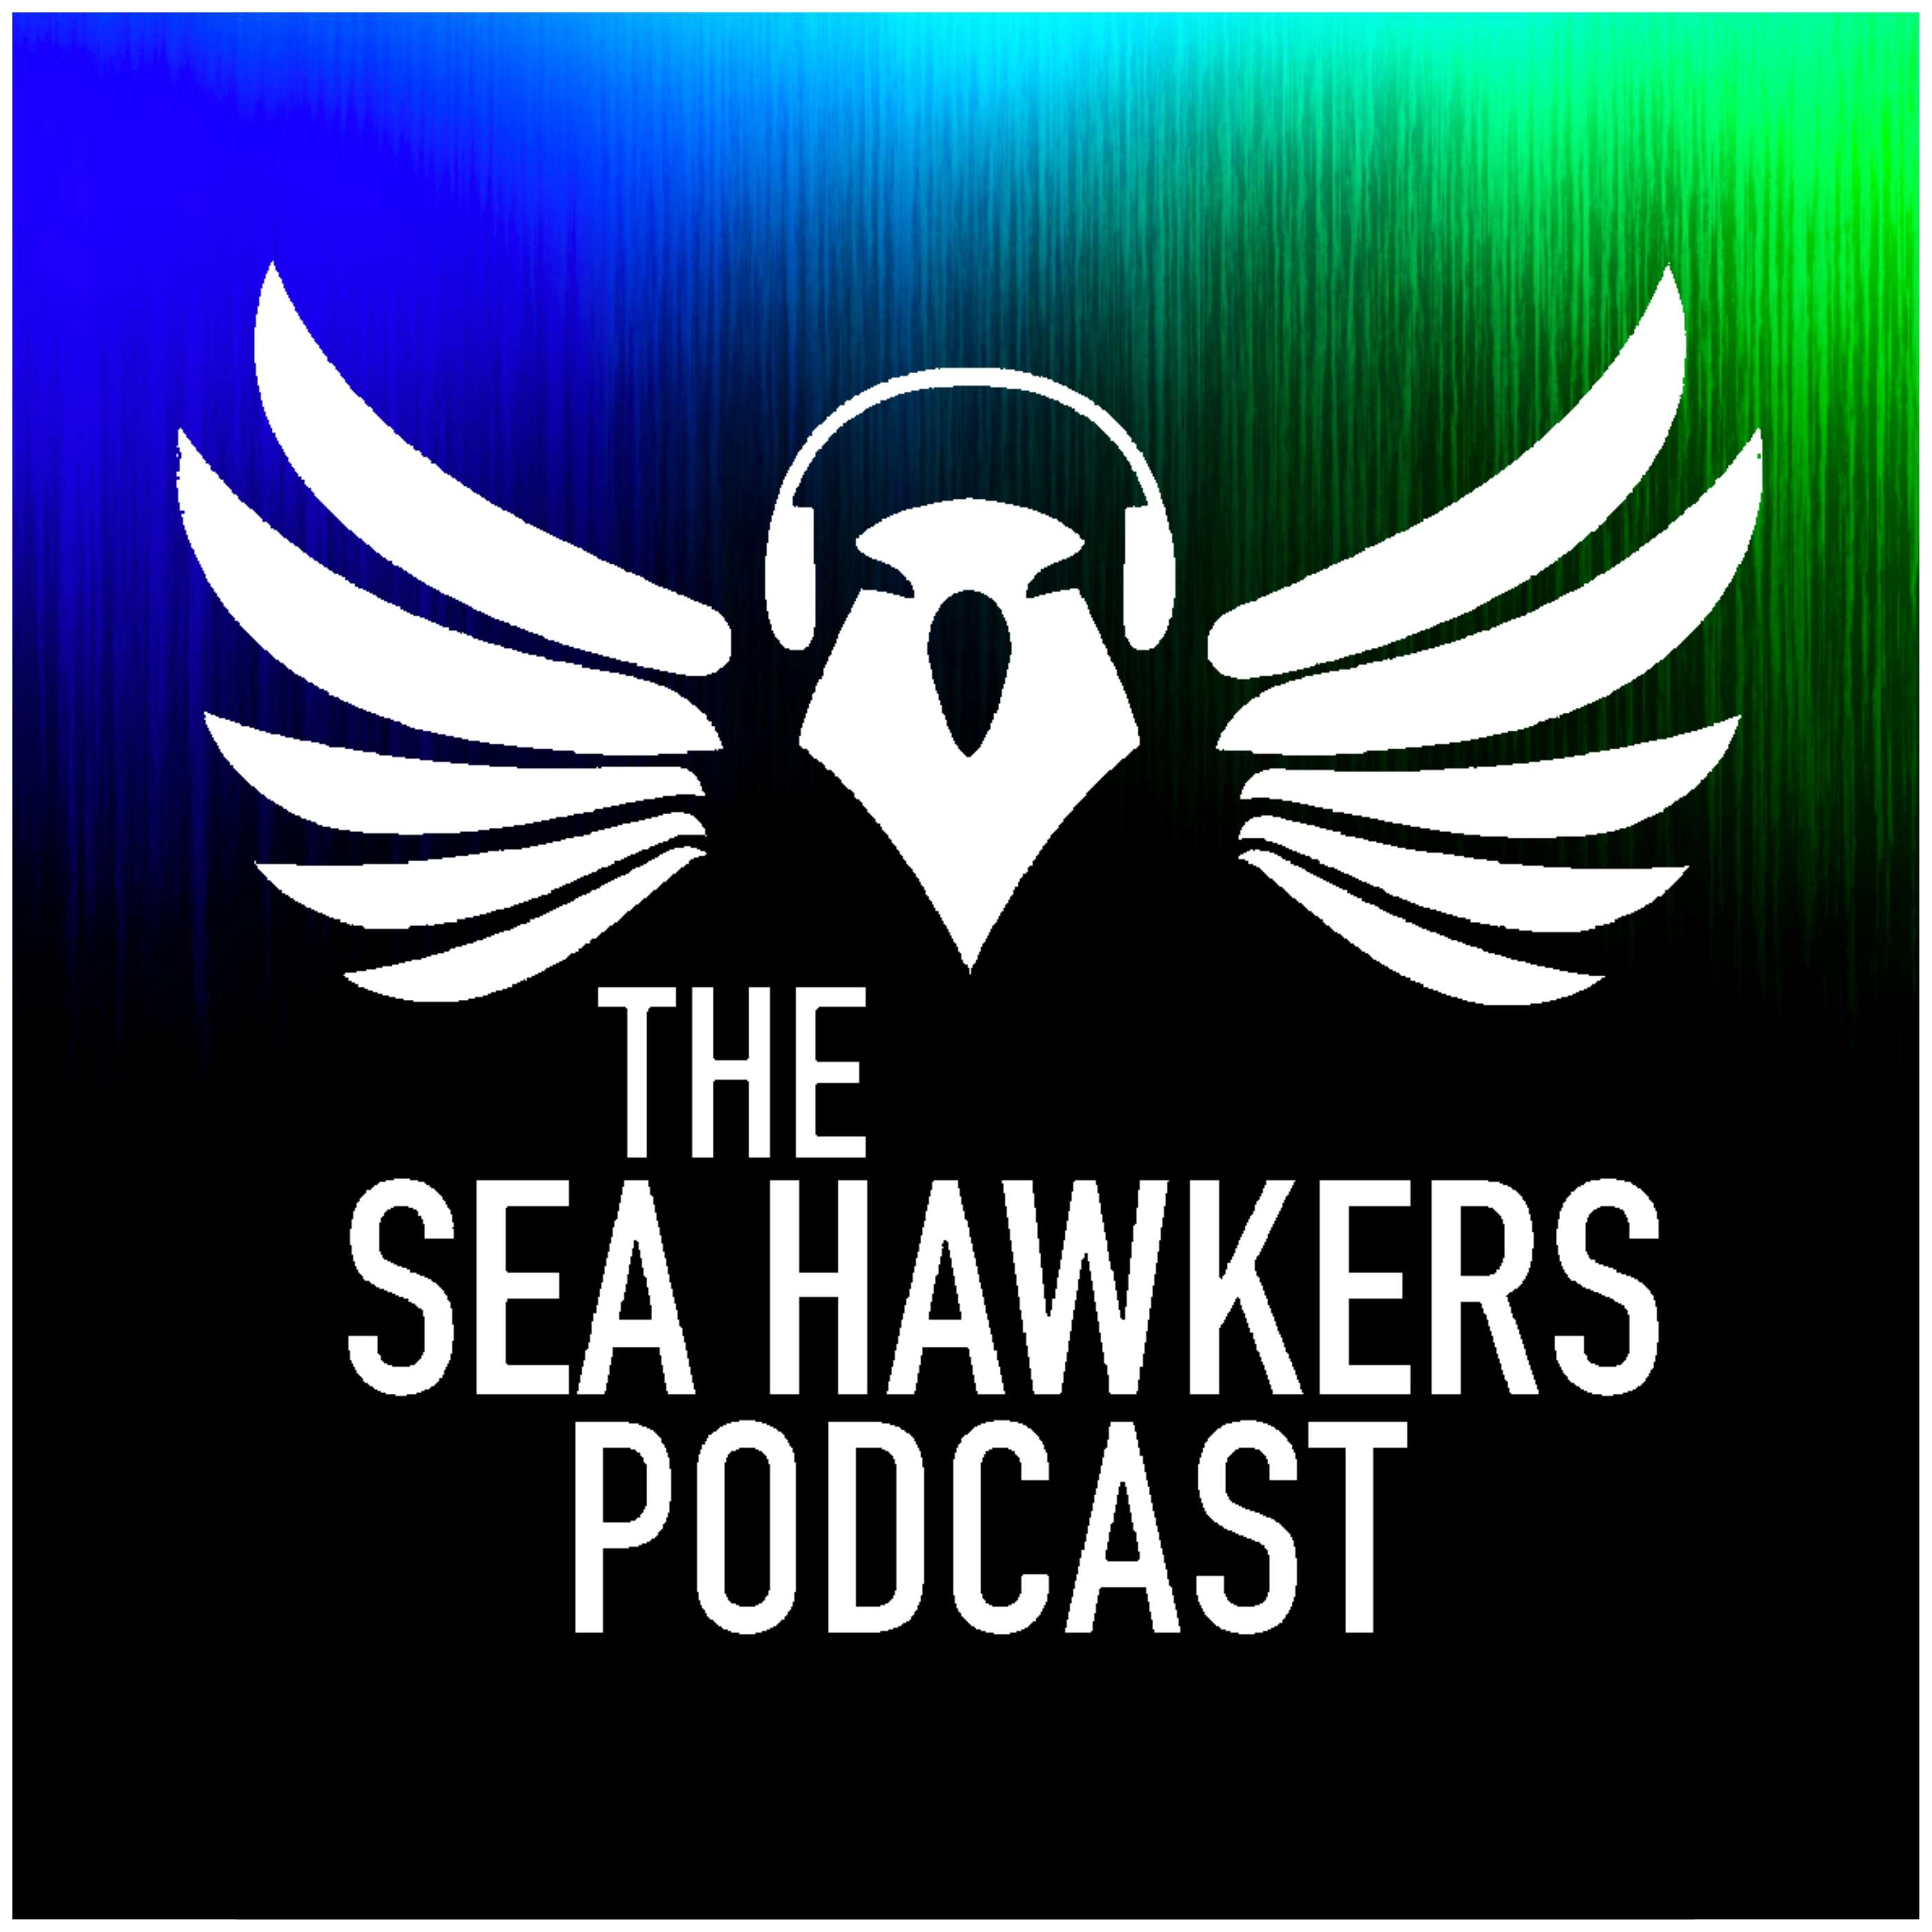 seahawkerspodcast logo